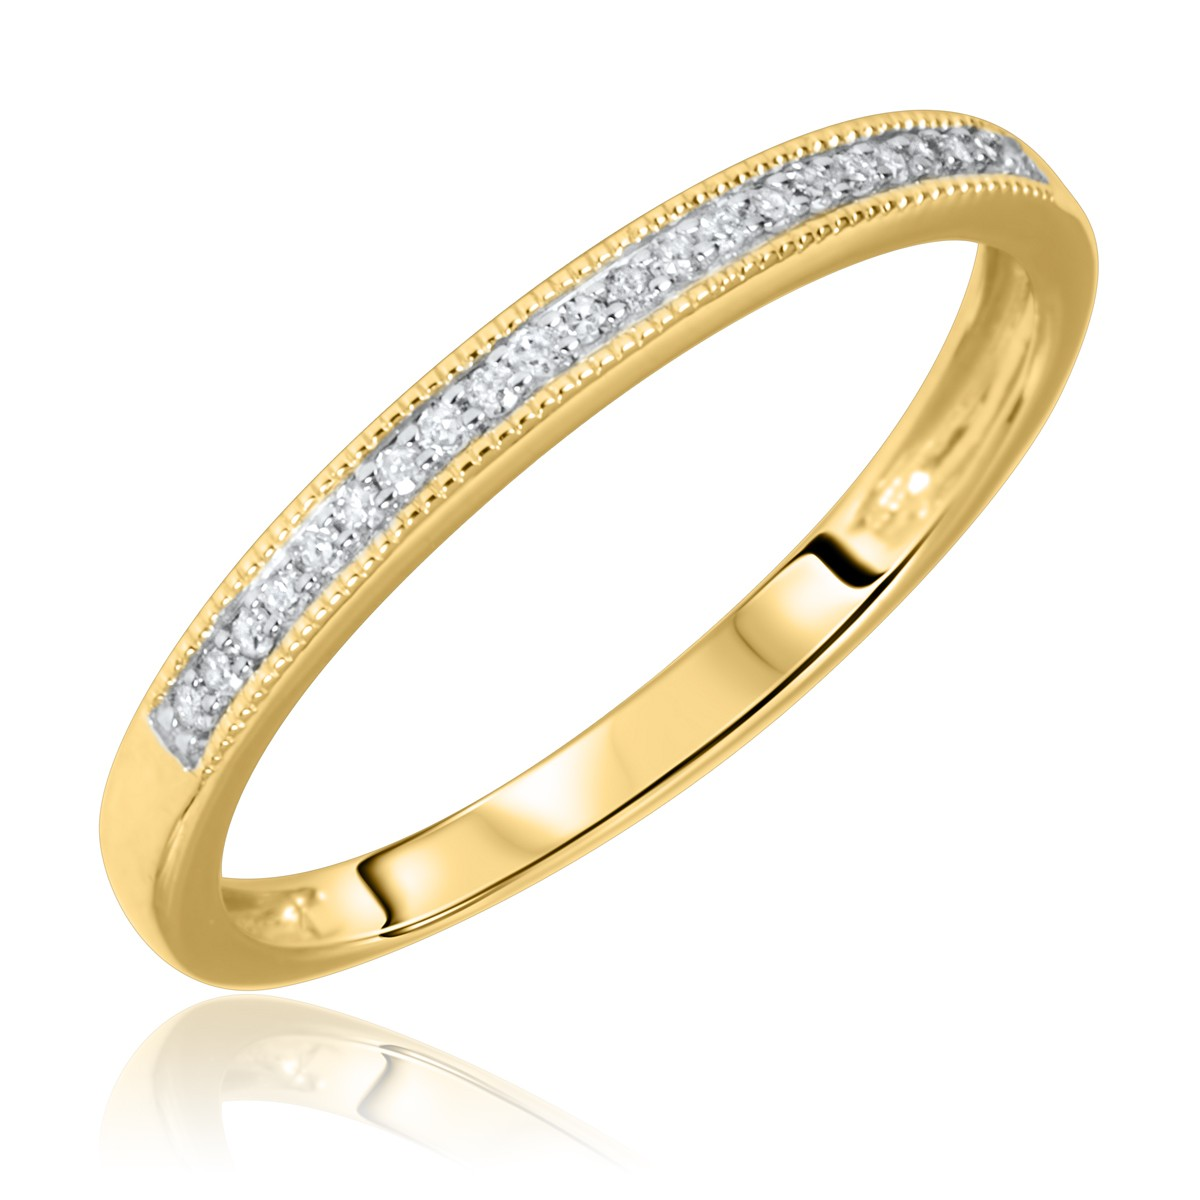 1/15 Carat T.W. Round Cut Diamond Ladies Wedding Band 10K Yellow Gold